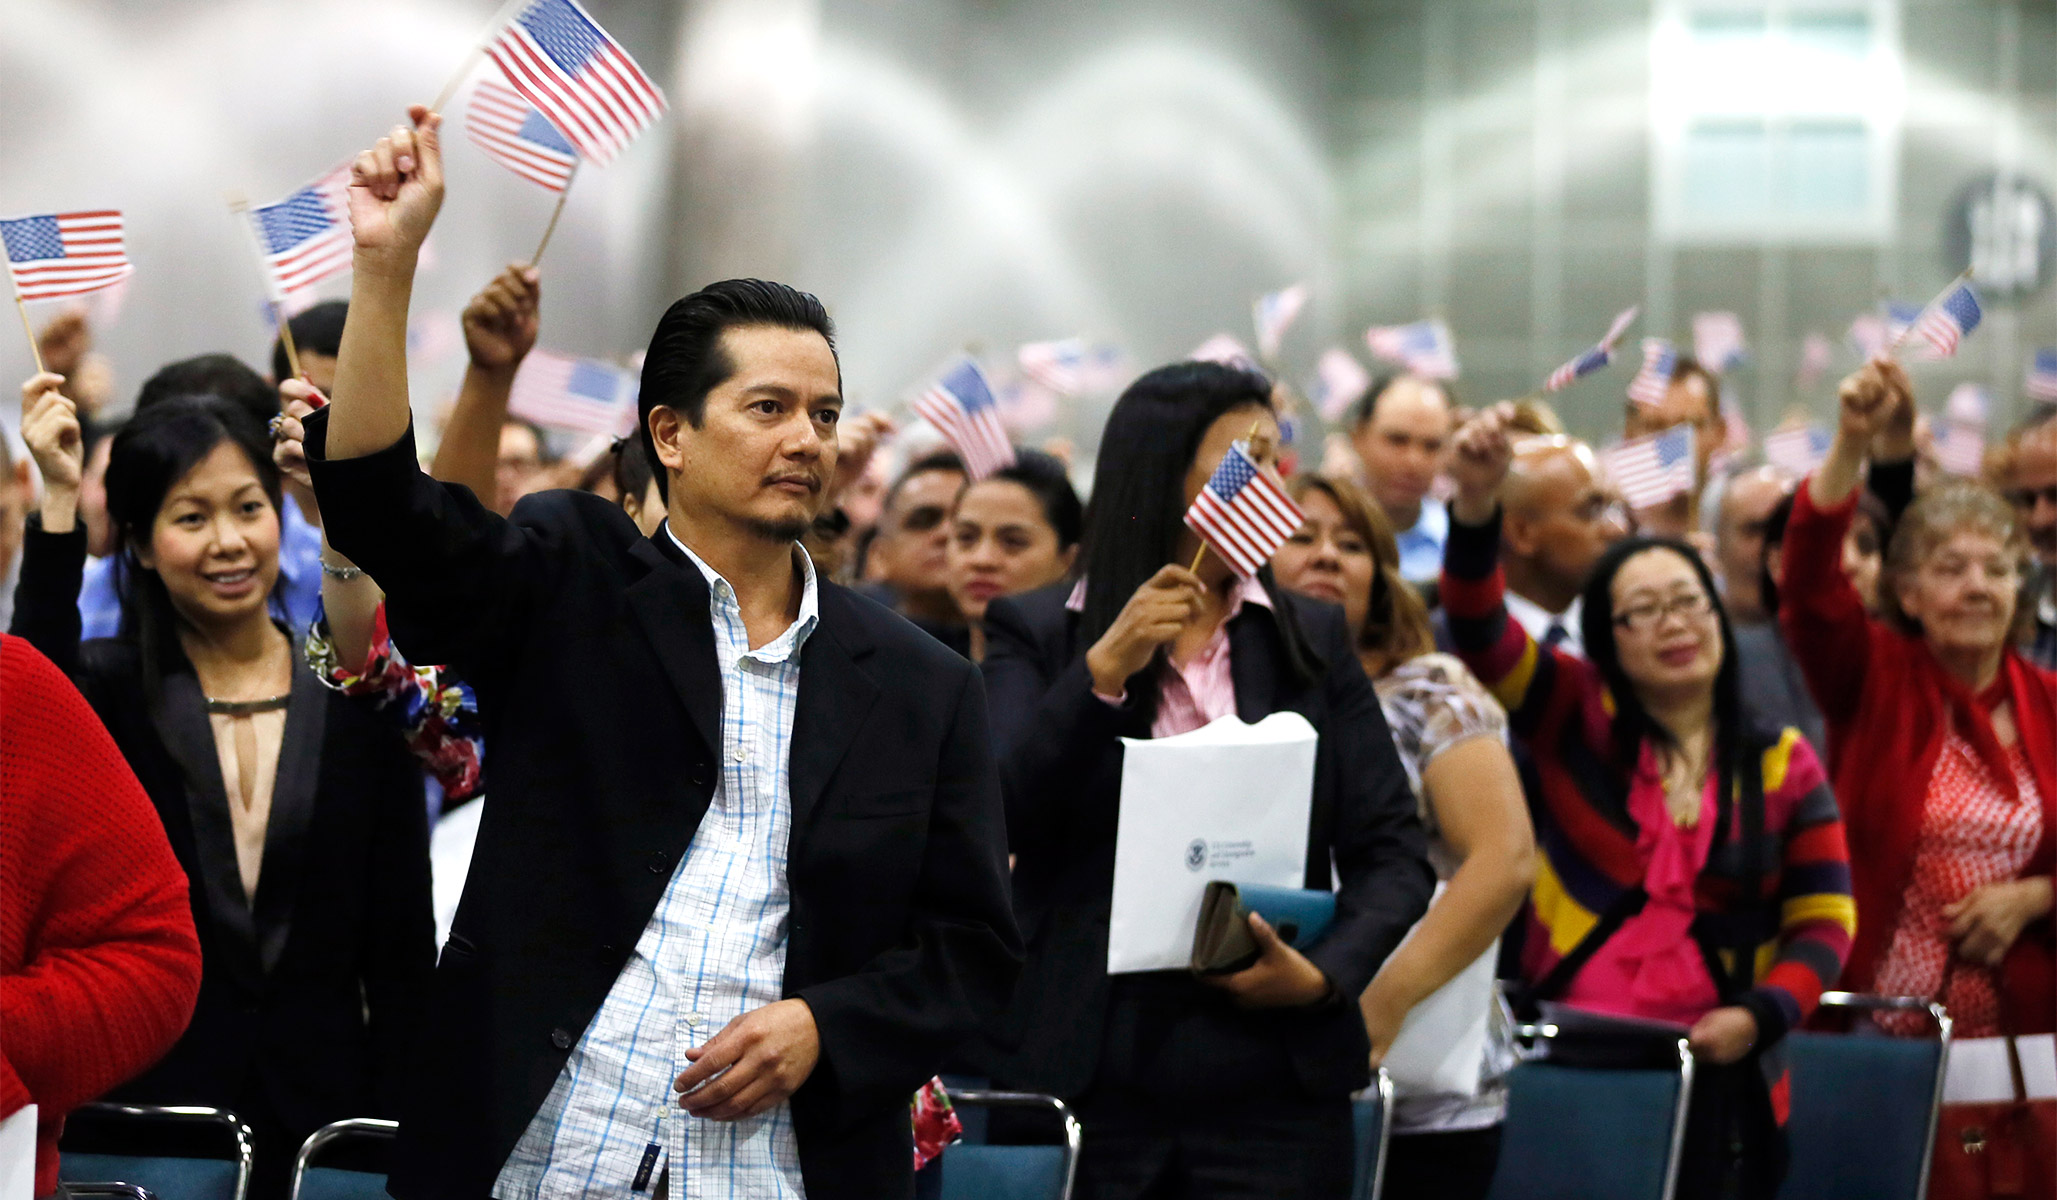 Ninth Circuit Lifts Injunctions Blocking Trump Admin's 'Public Charge' Rule for Immigrants